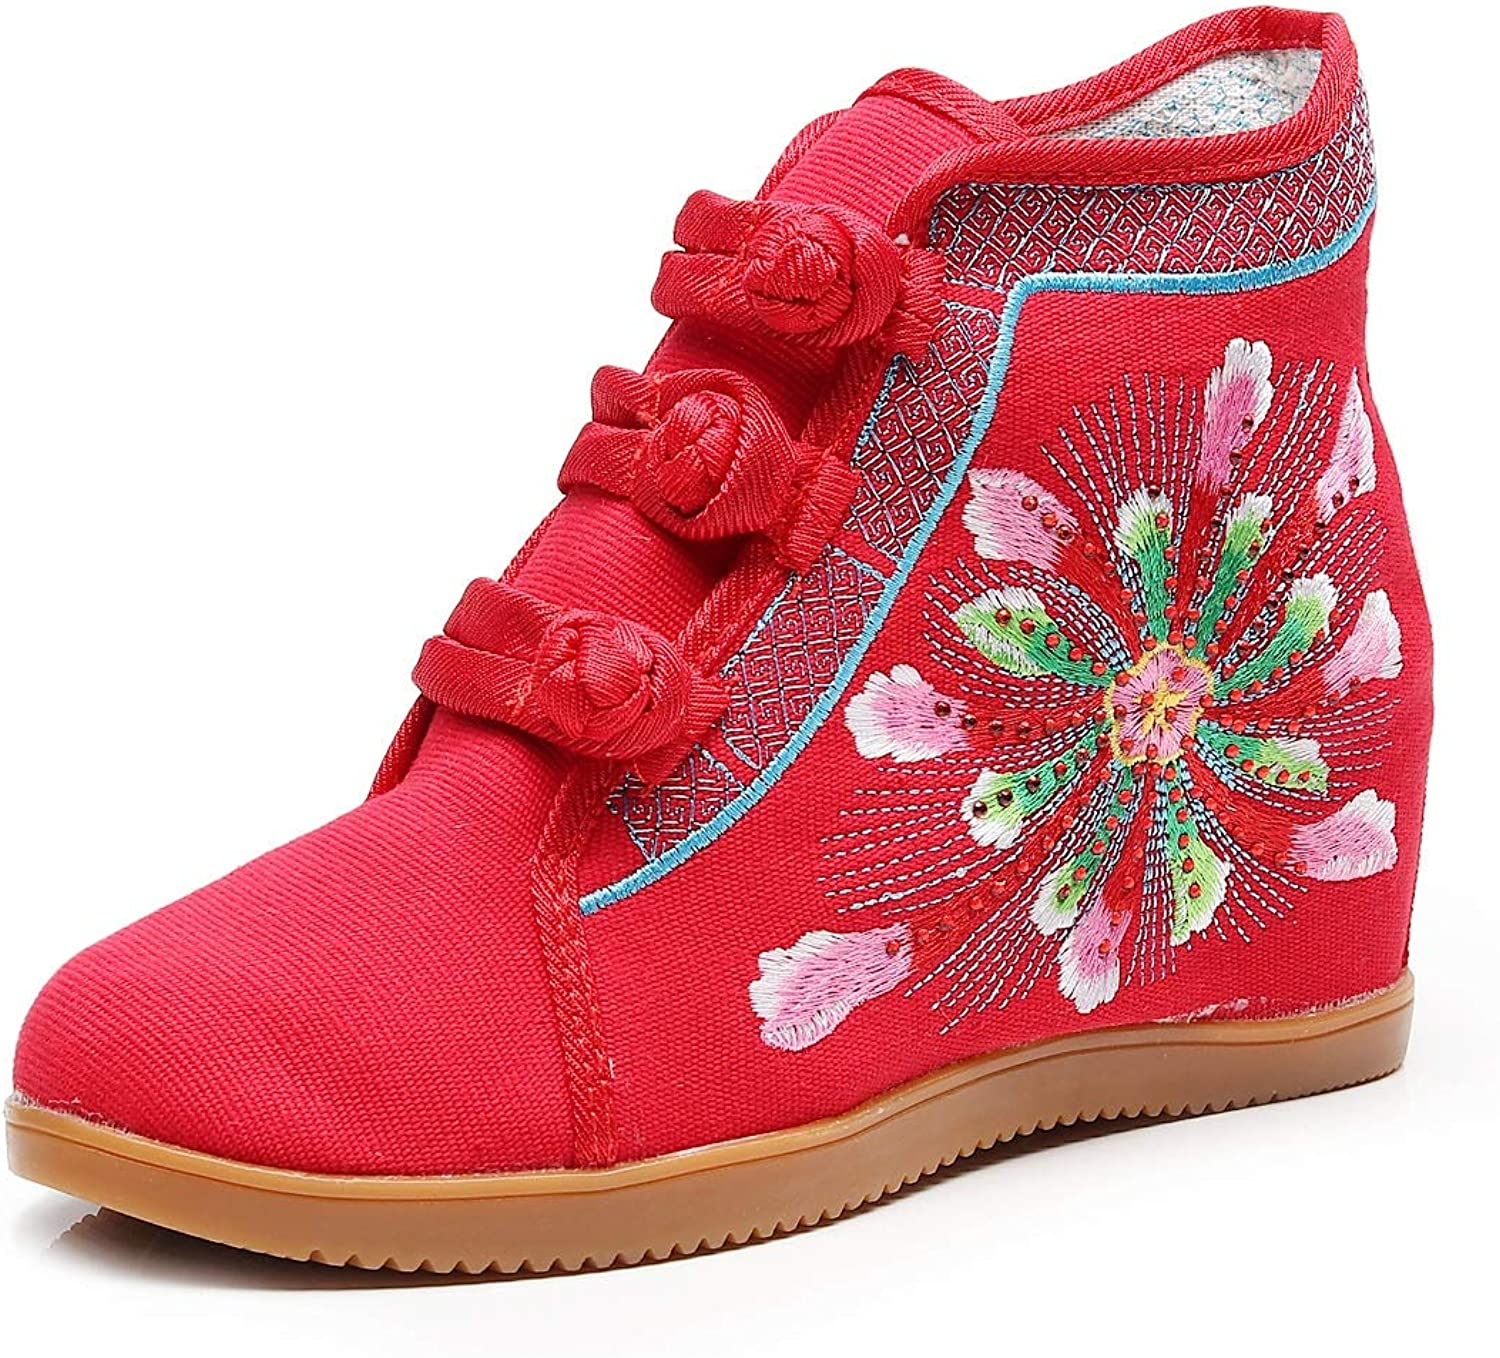 LingGT Women's Red Boots Canvas Embroidery Flower Ankle shoes (color   Red, Size   CA 5)